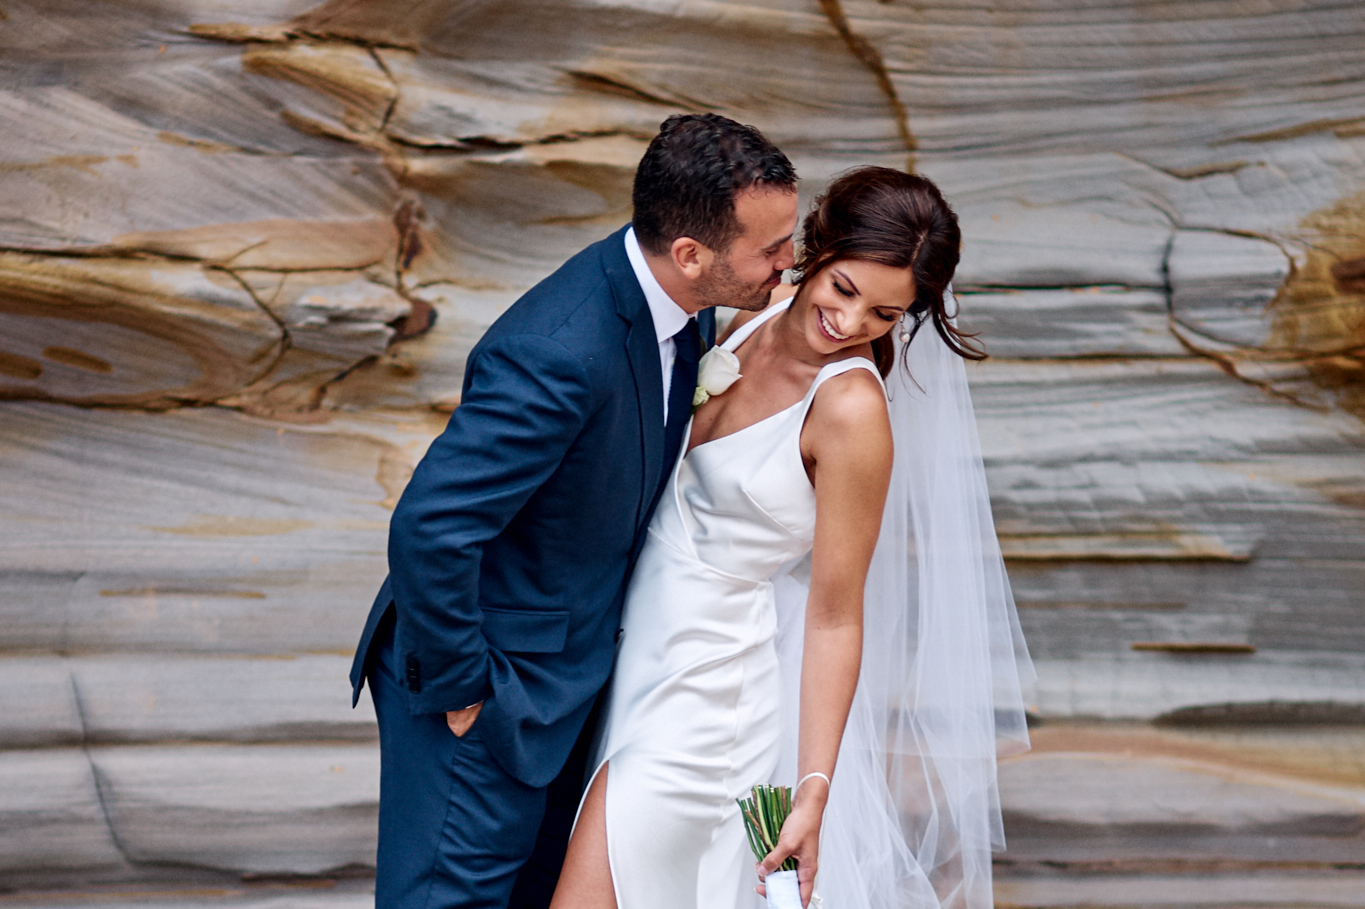 Bride and groom laughing together for portrait on the rocks at Moby Dicks whale beach by Blue Mountains wedding photographer Joshua Witheford